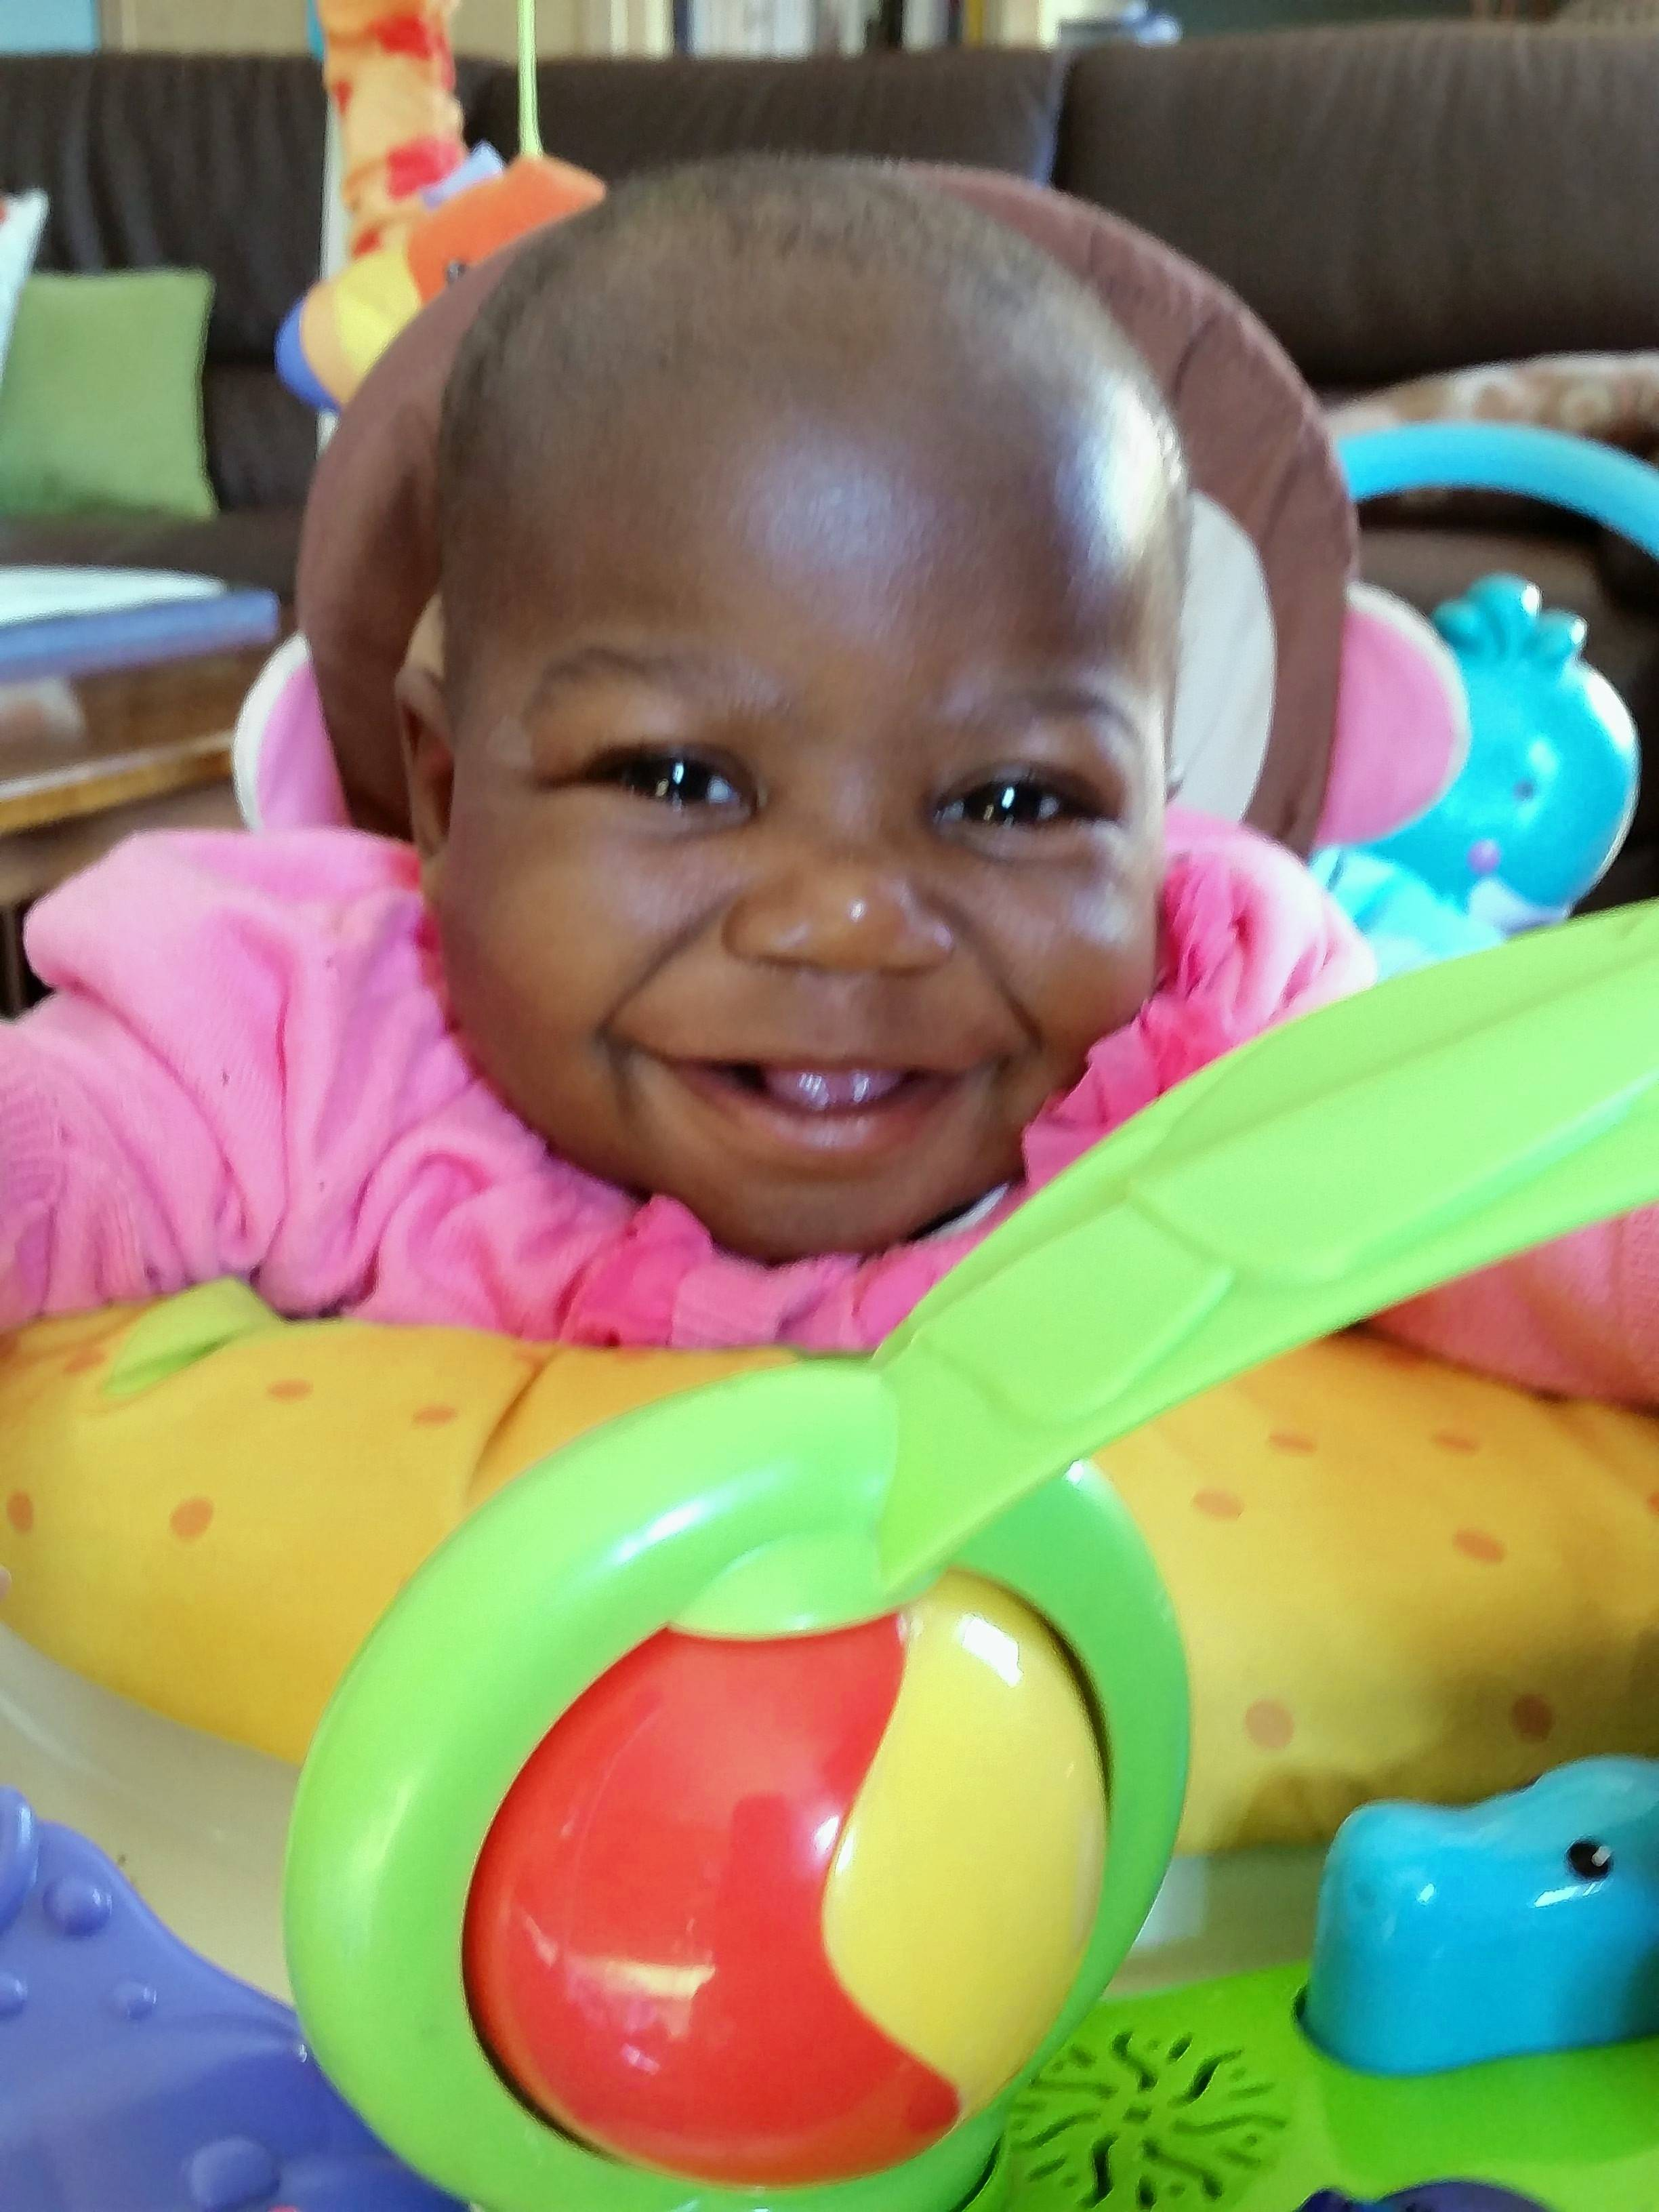 After life-changing surgery in 2017 at Advocate Children's Hospital in Park Ridge, Dominique was all smiles and expected to live a normal life. Malaria is believed to be the cause of her death last year.